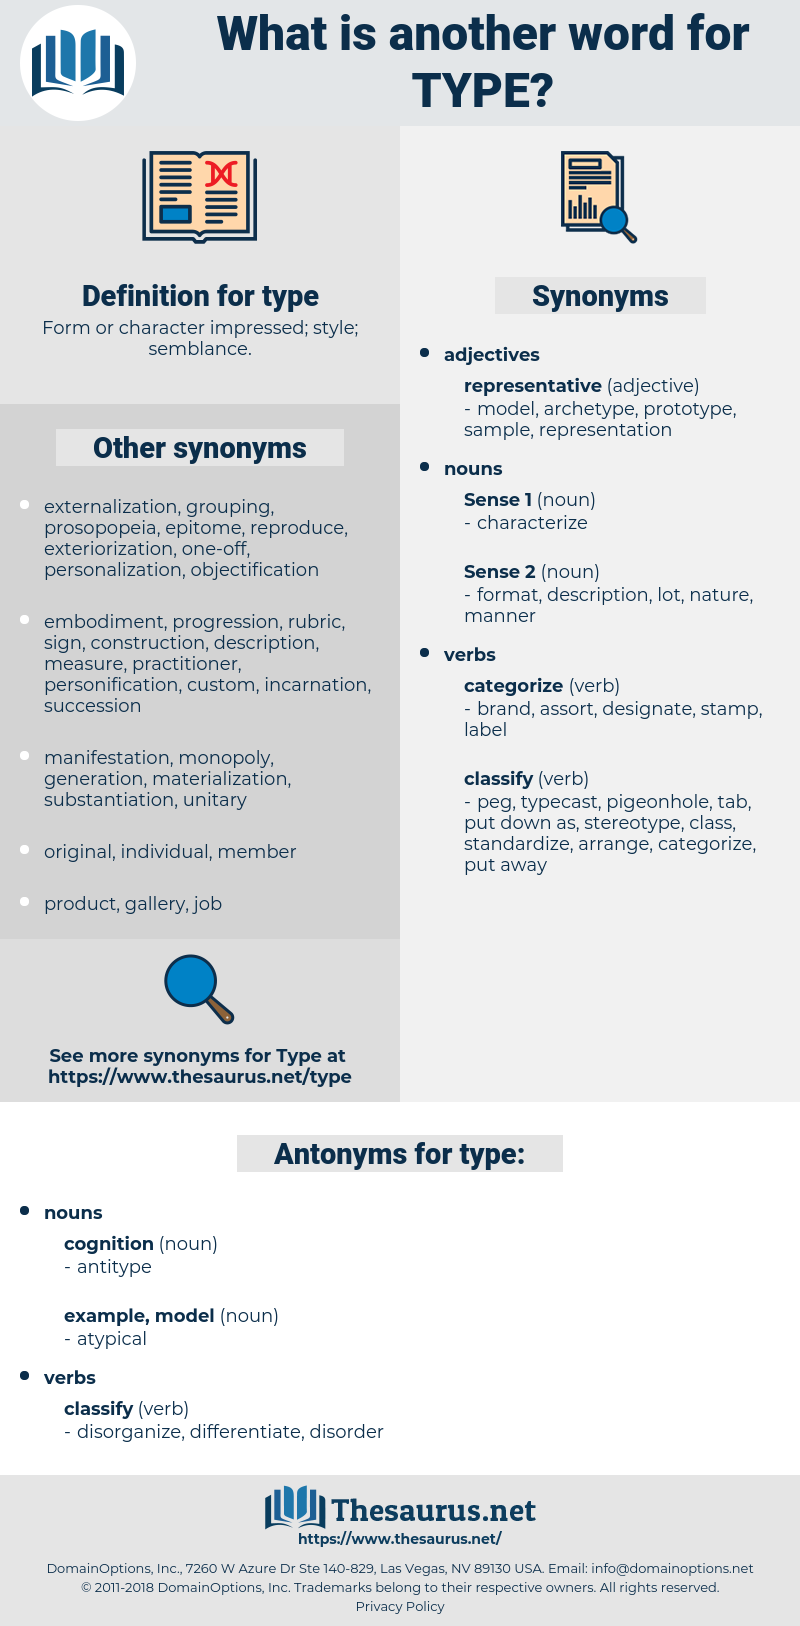 type, synonym type, another word for type, words like type, thesaurus type